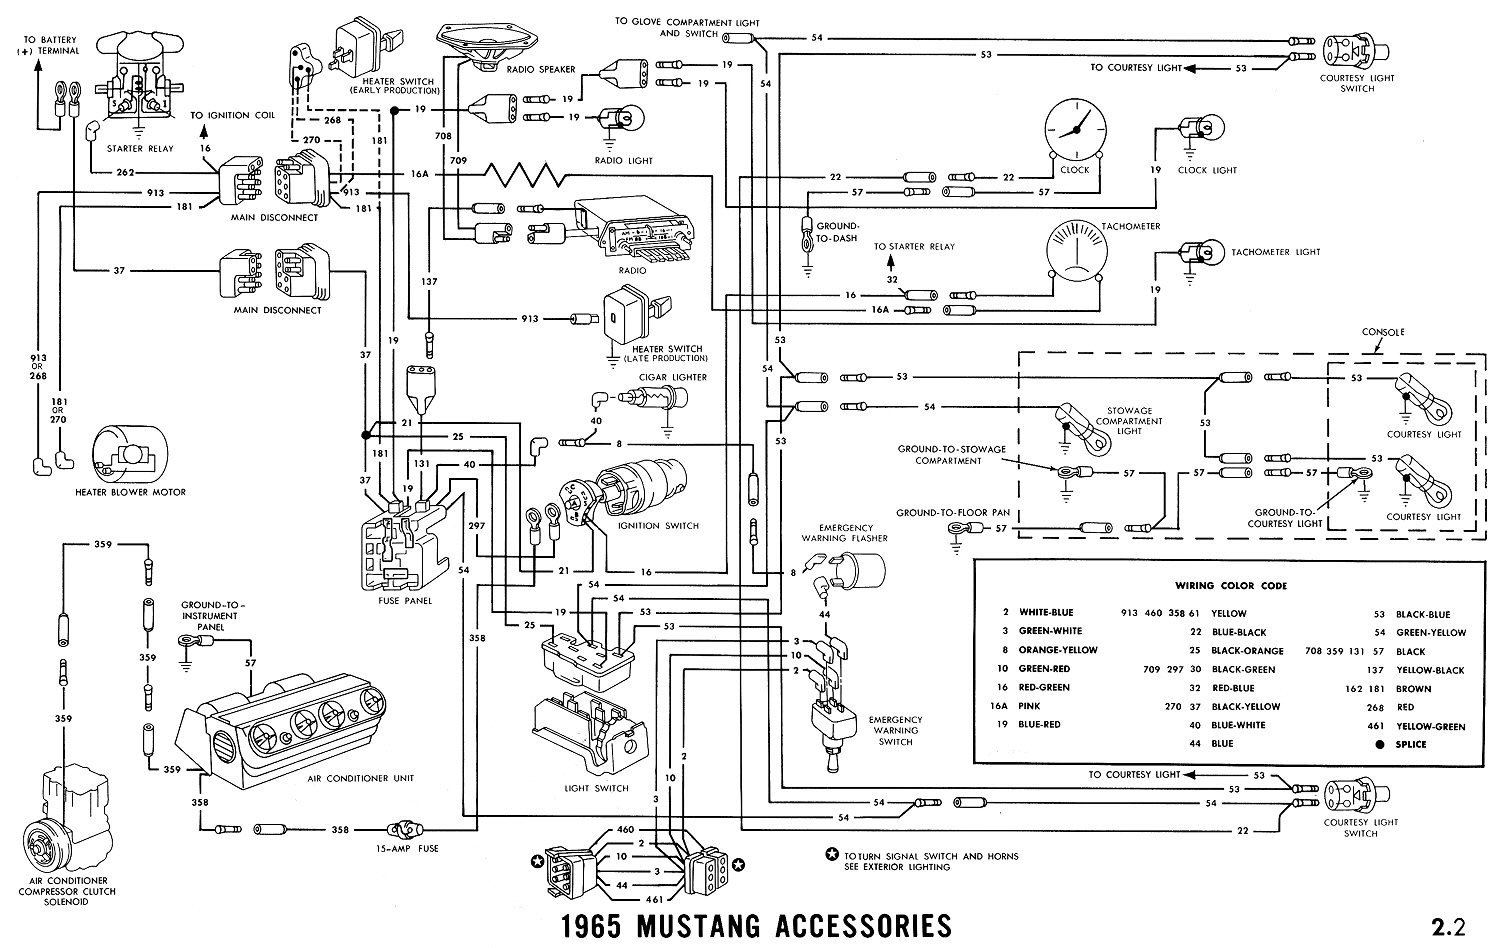 1965 Mustang Wiring Diagrams on 1988 mustang convertible top wiring diagram